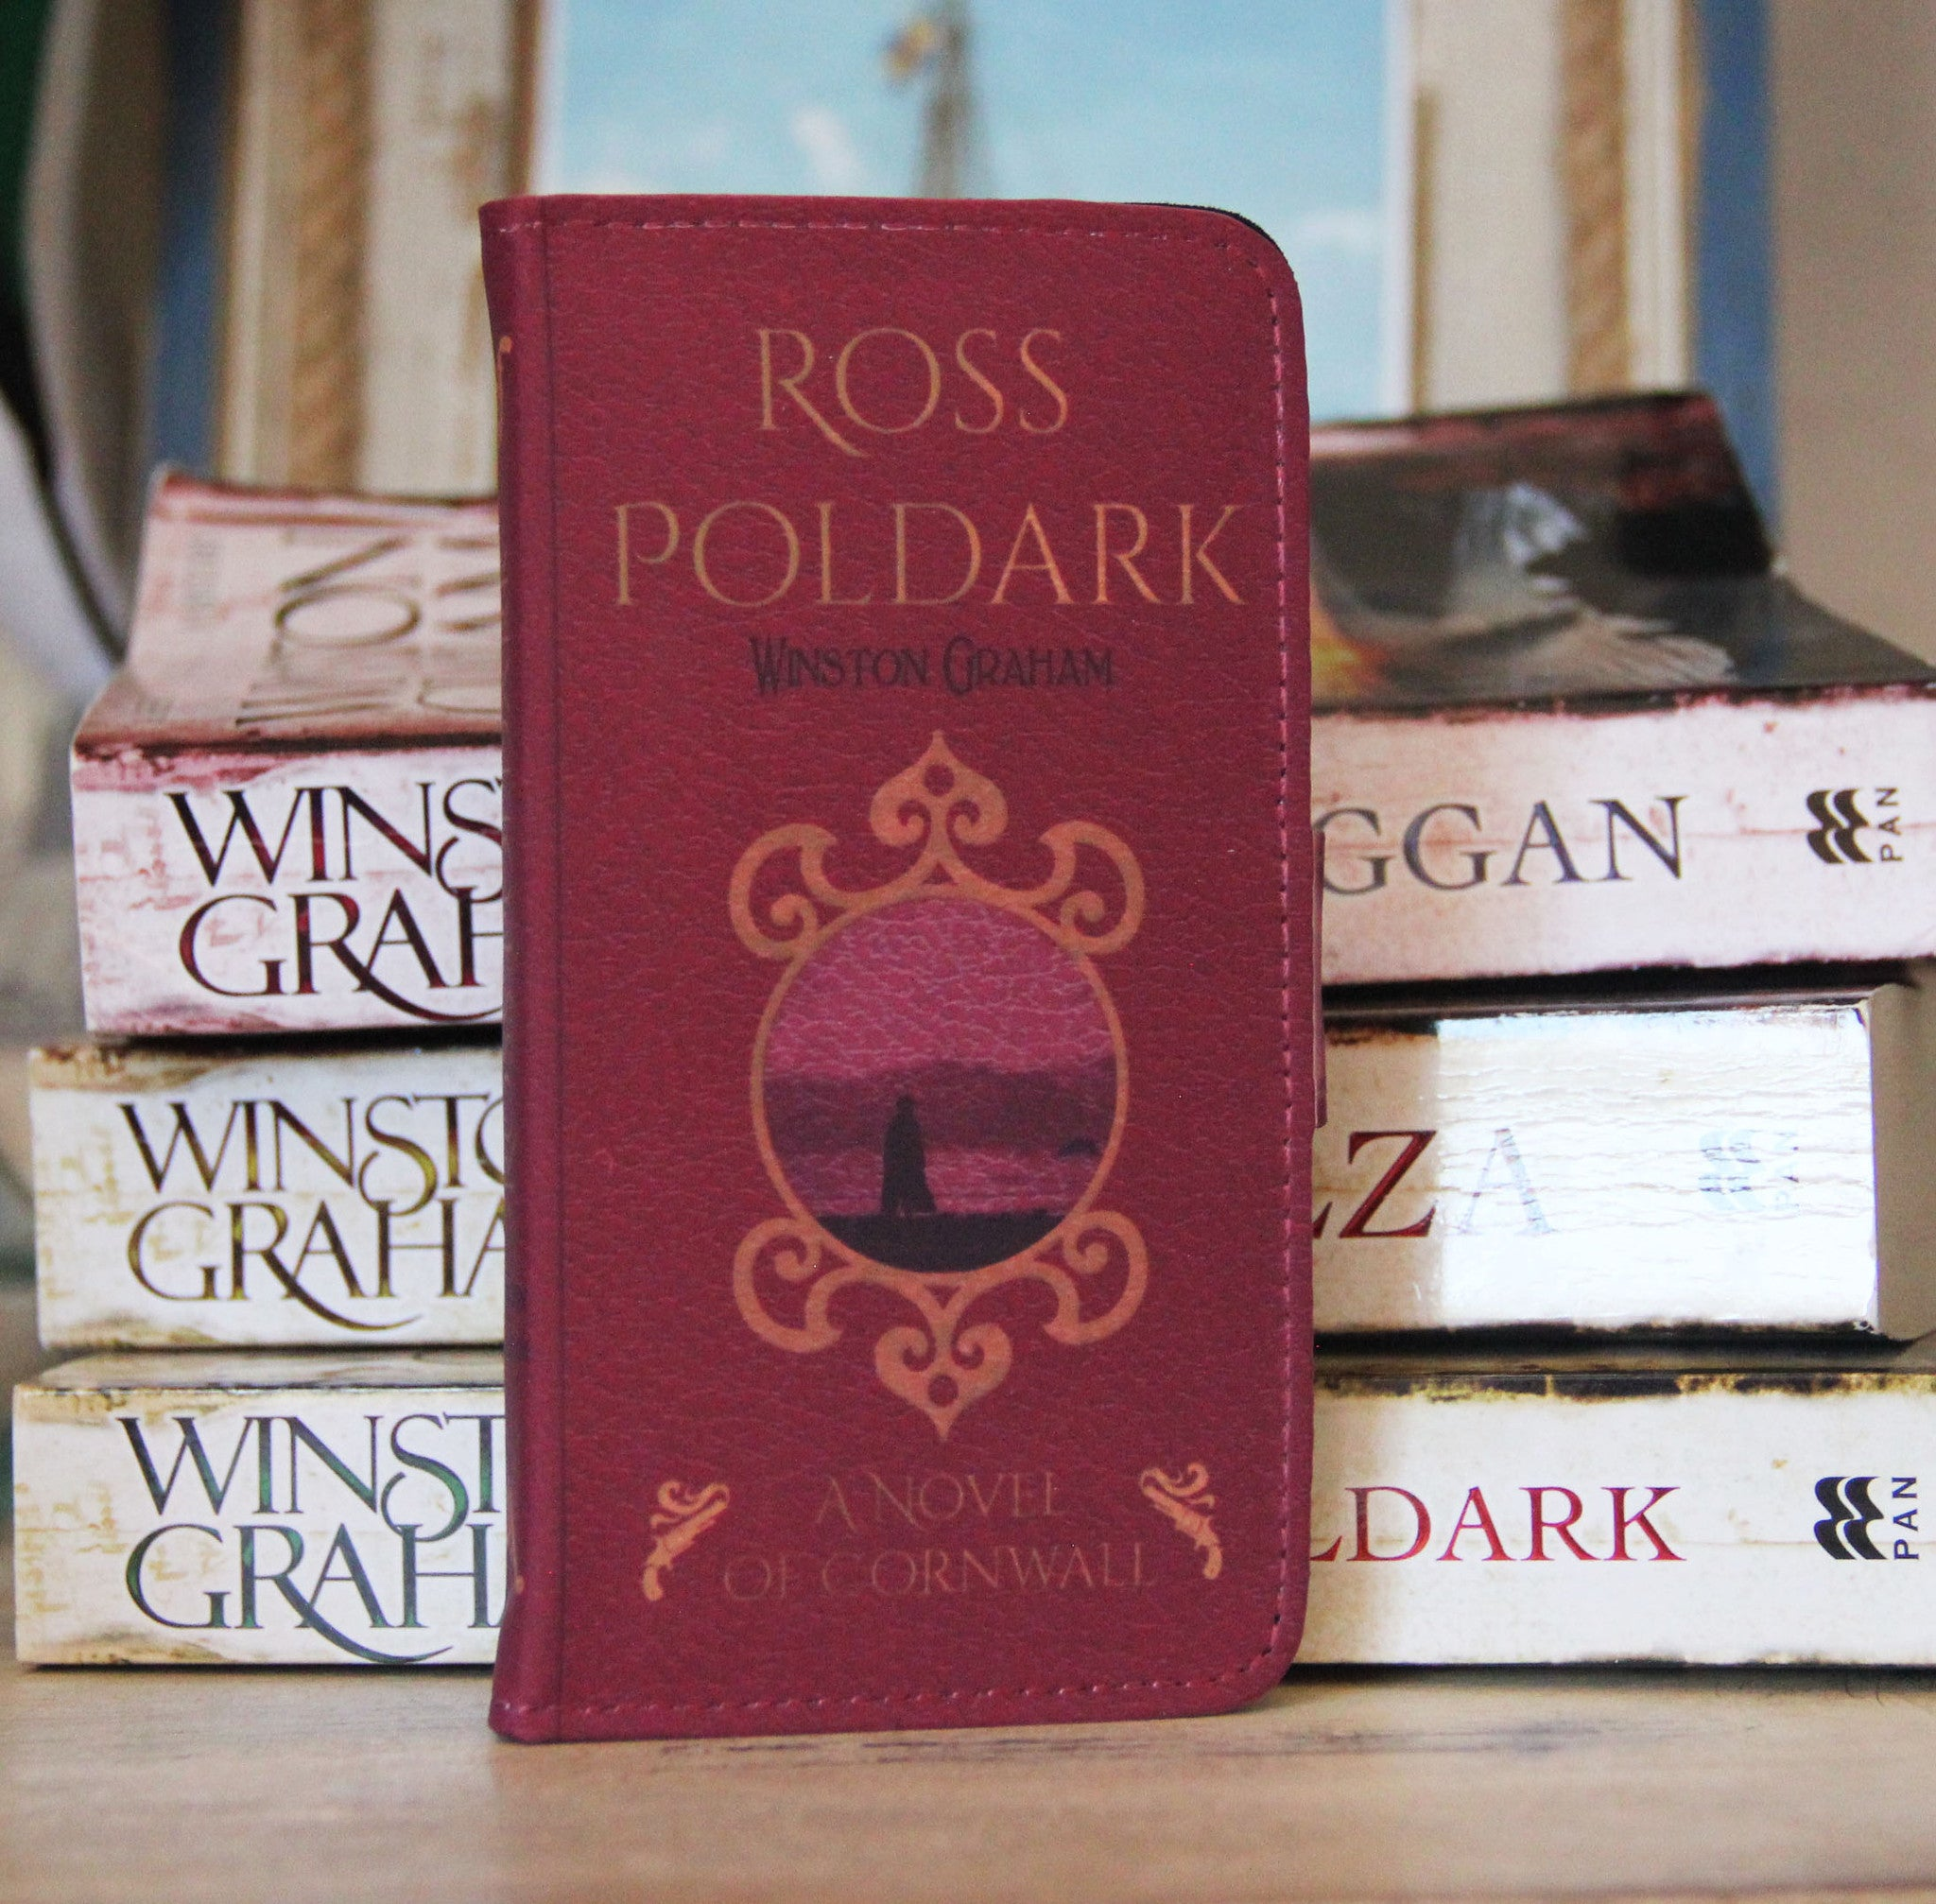 Ross Poldark 2in1 Phone Wallet - Consulting Fangeeks - 1